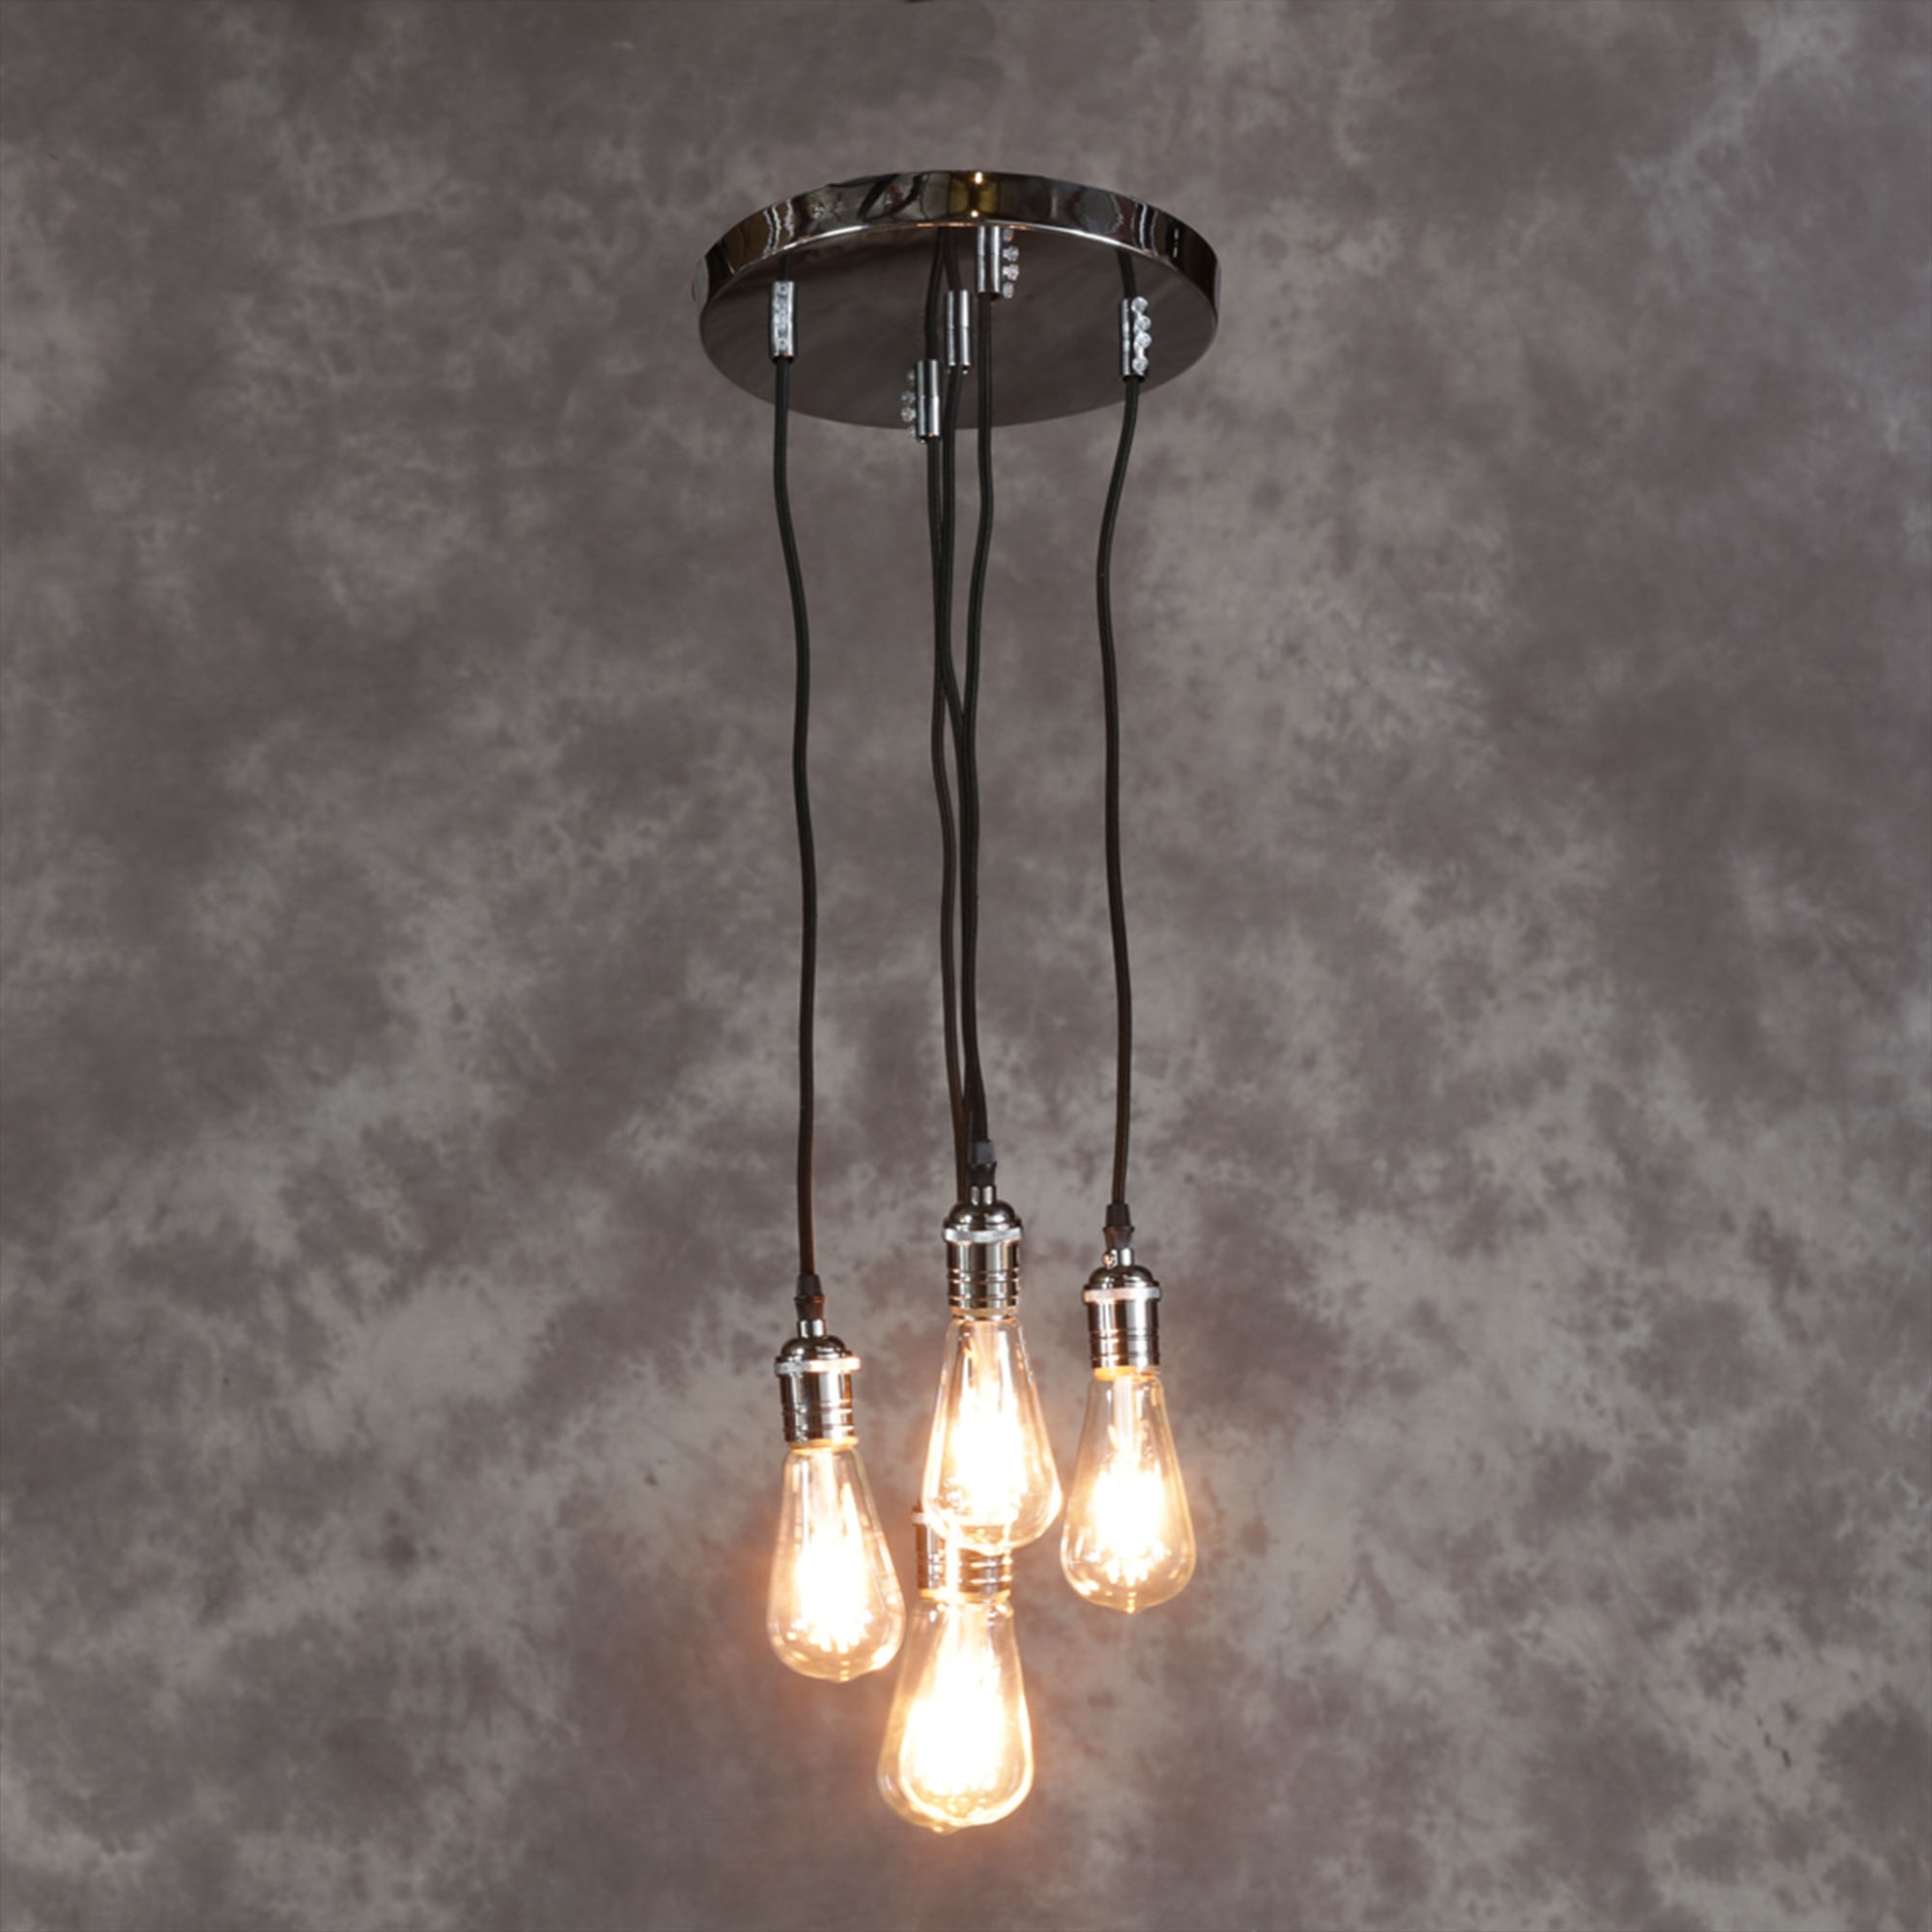 roth jar fans vallymede light ceiling in barn multi at com chandelier shop pendant lighting lowes glass clear hanging allen pl lights